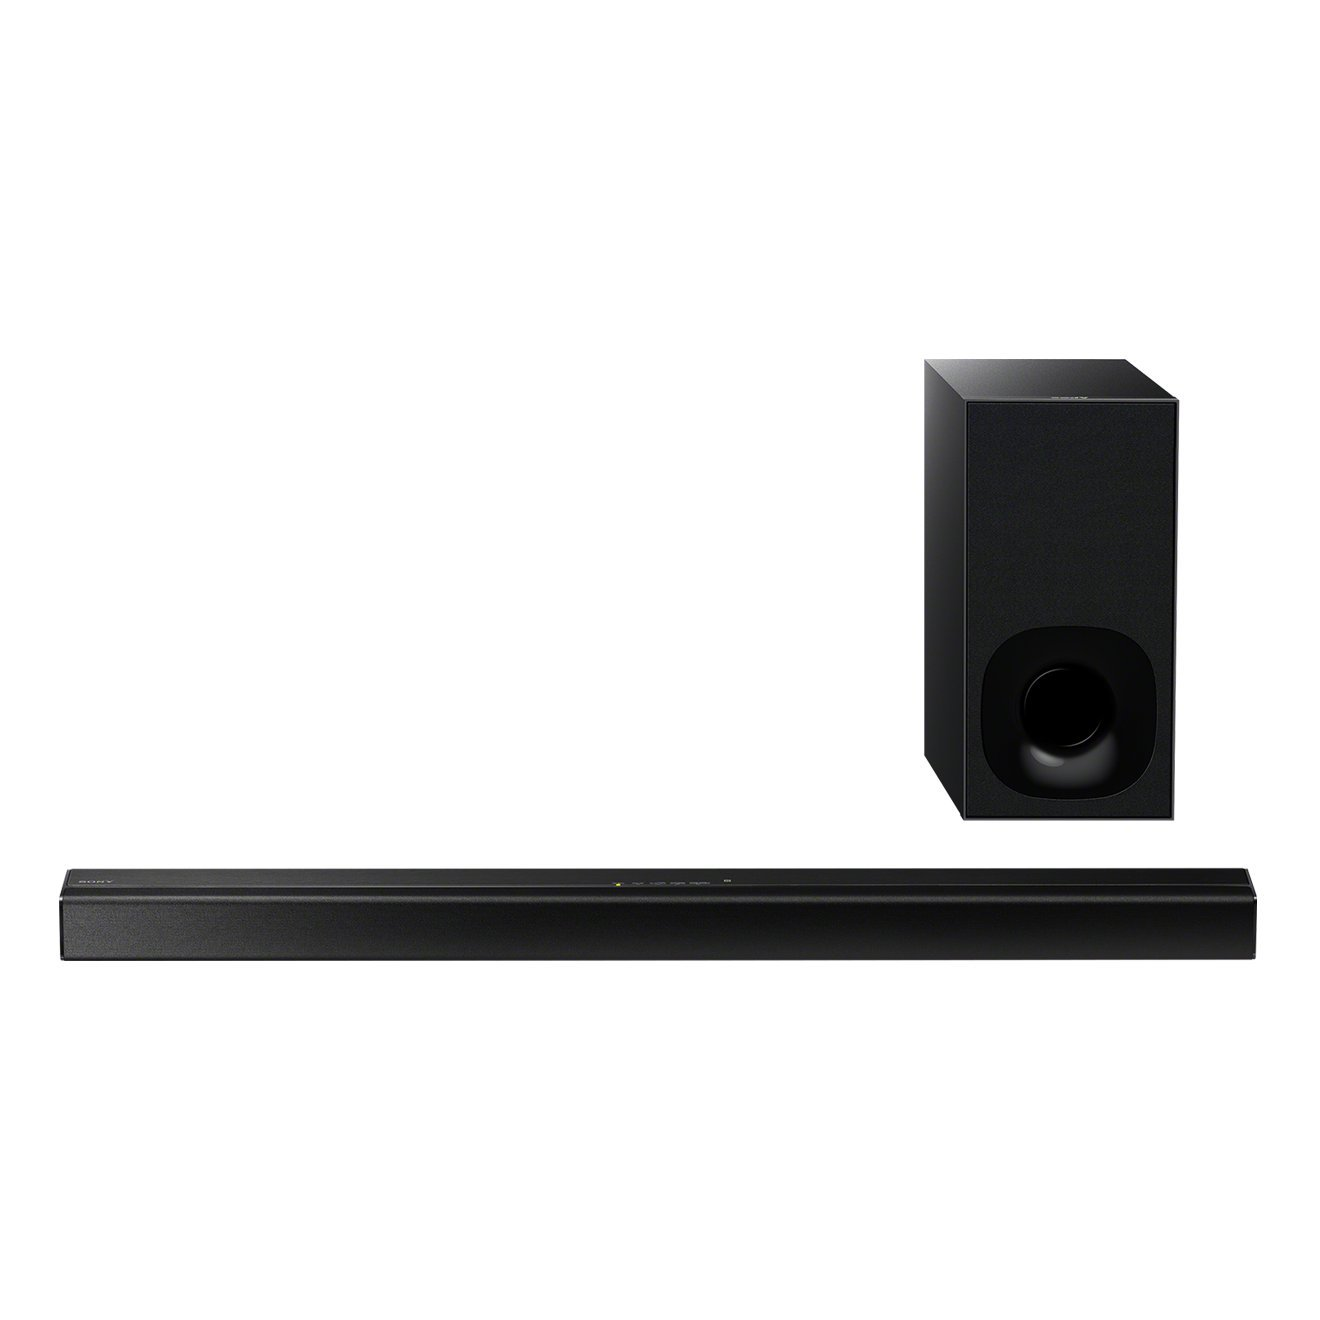 Sony Ht Ct180 21 Channel Sound Bar W Wireless Subwoofer Sonic 4 Ohm Sub Wiring Diagram Electronics